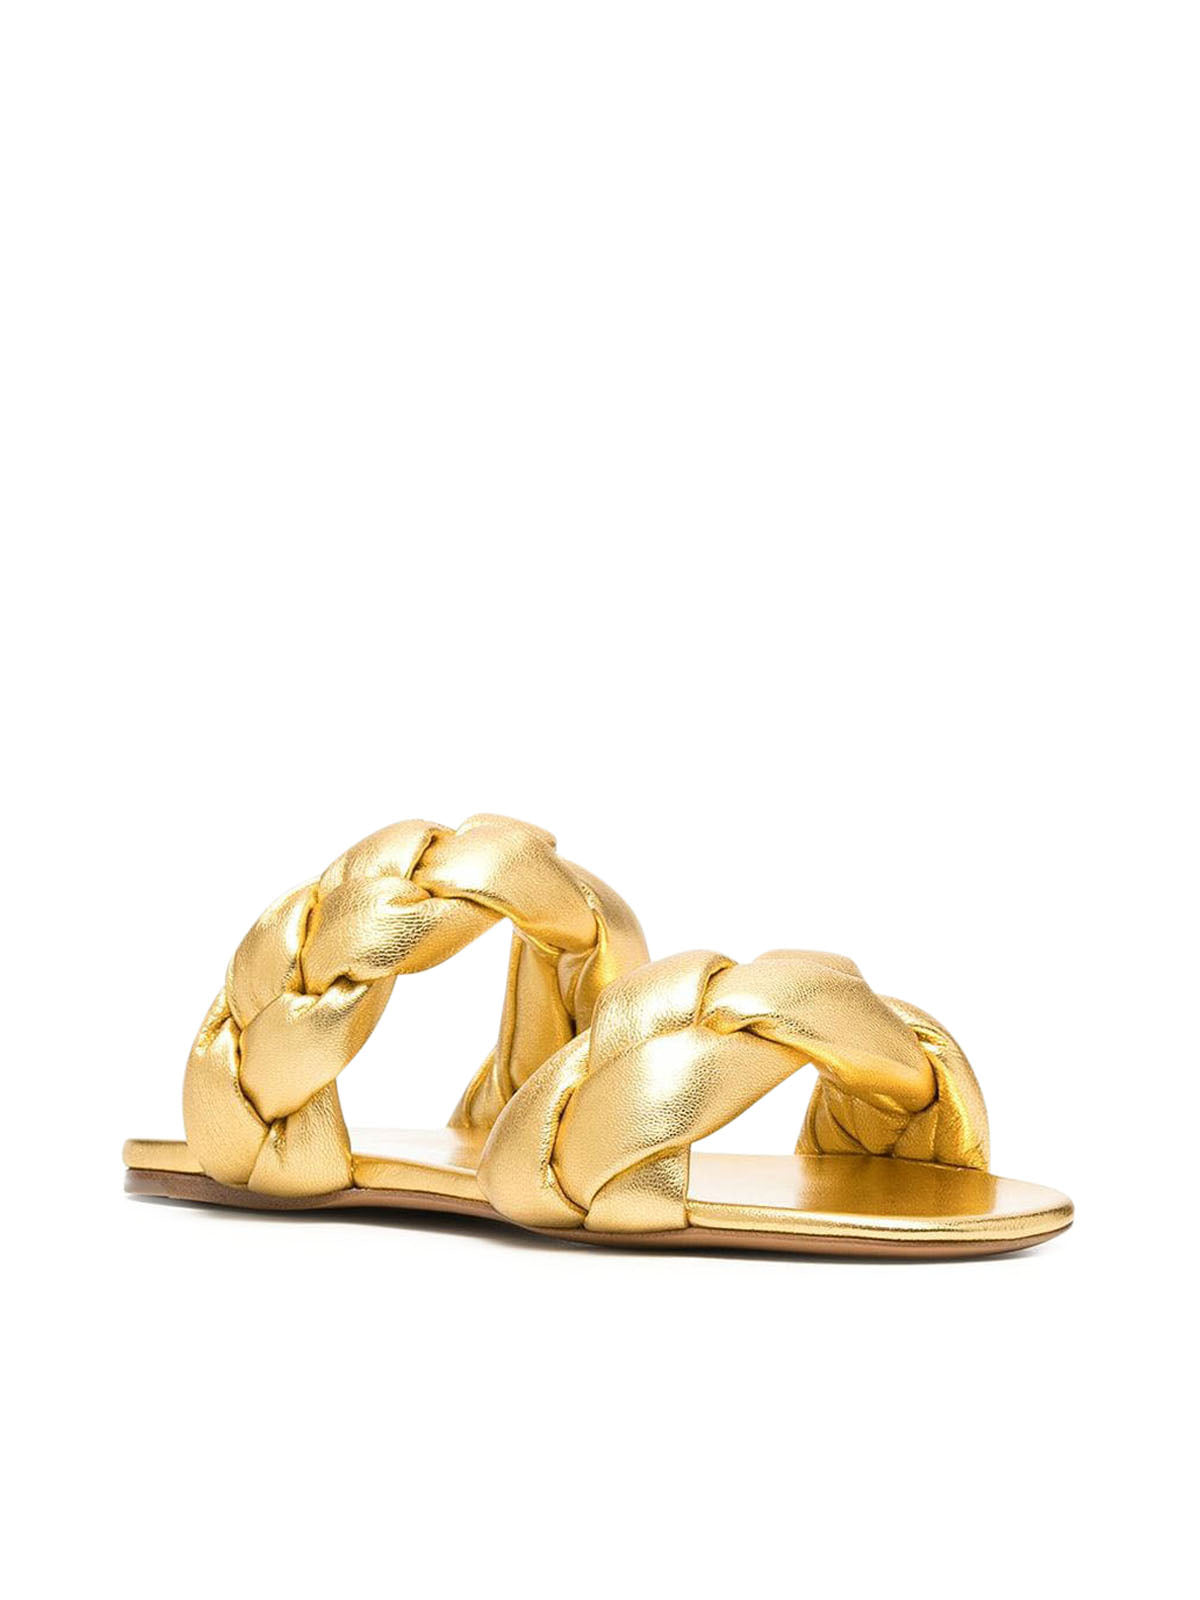 metallic interwoven flat sandals